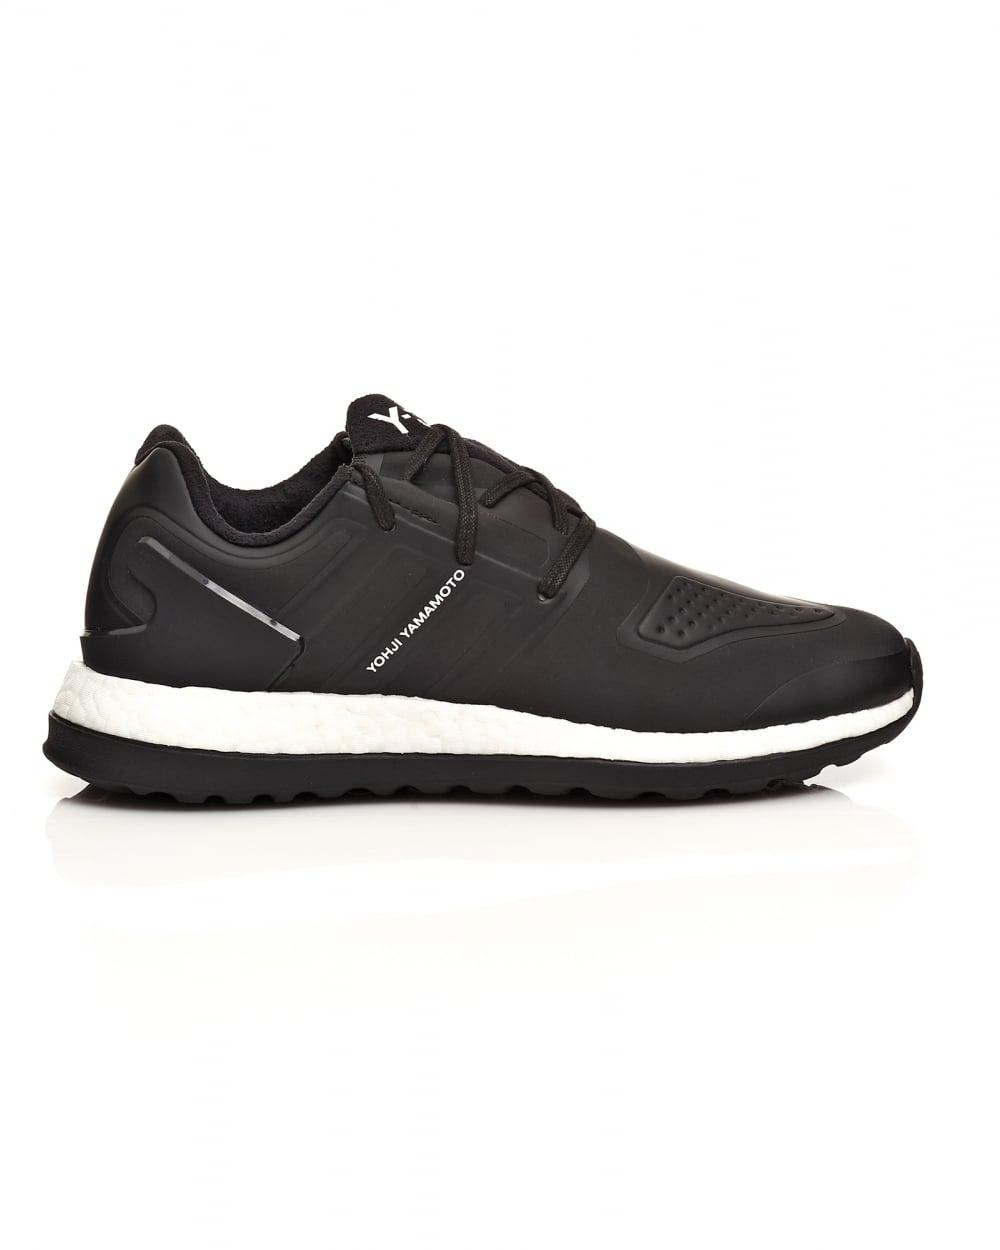 ce52fd6d877 Y-3 Pure Boost Zg Core Black Neoprene Trainers in Black for Men - Lyst